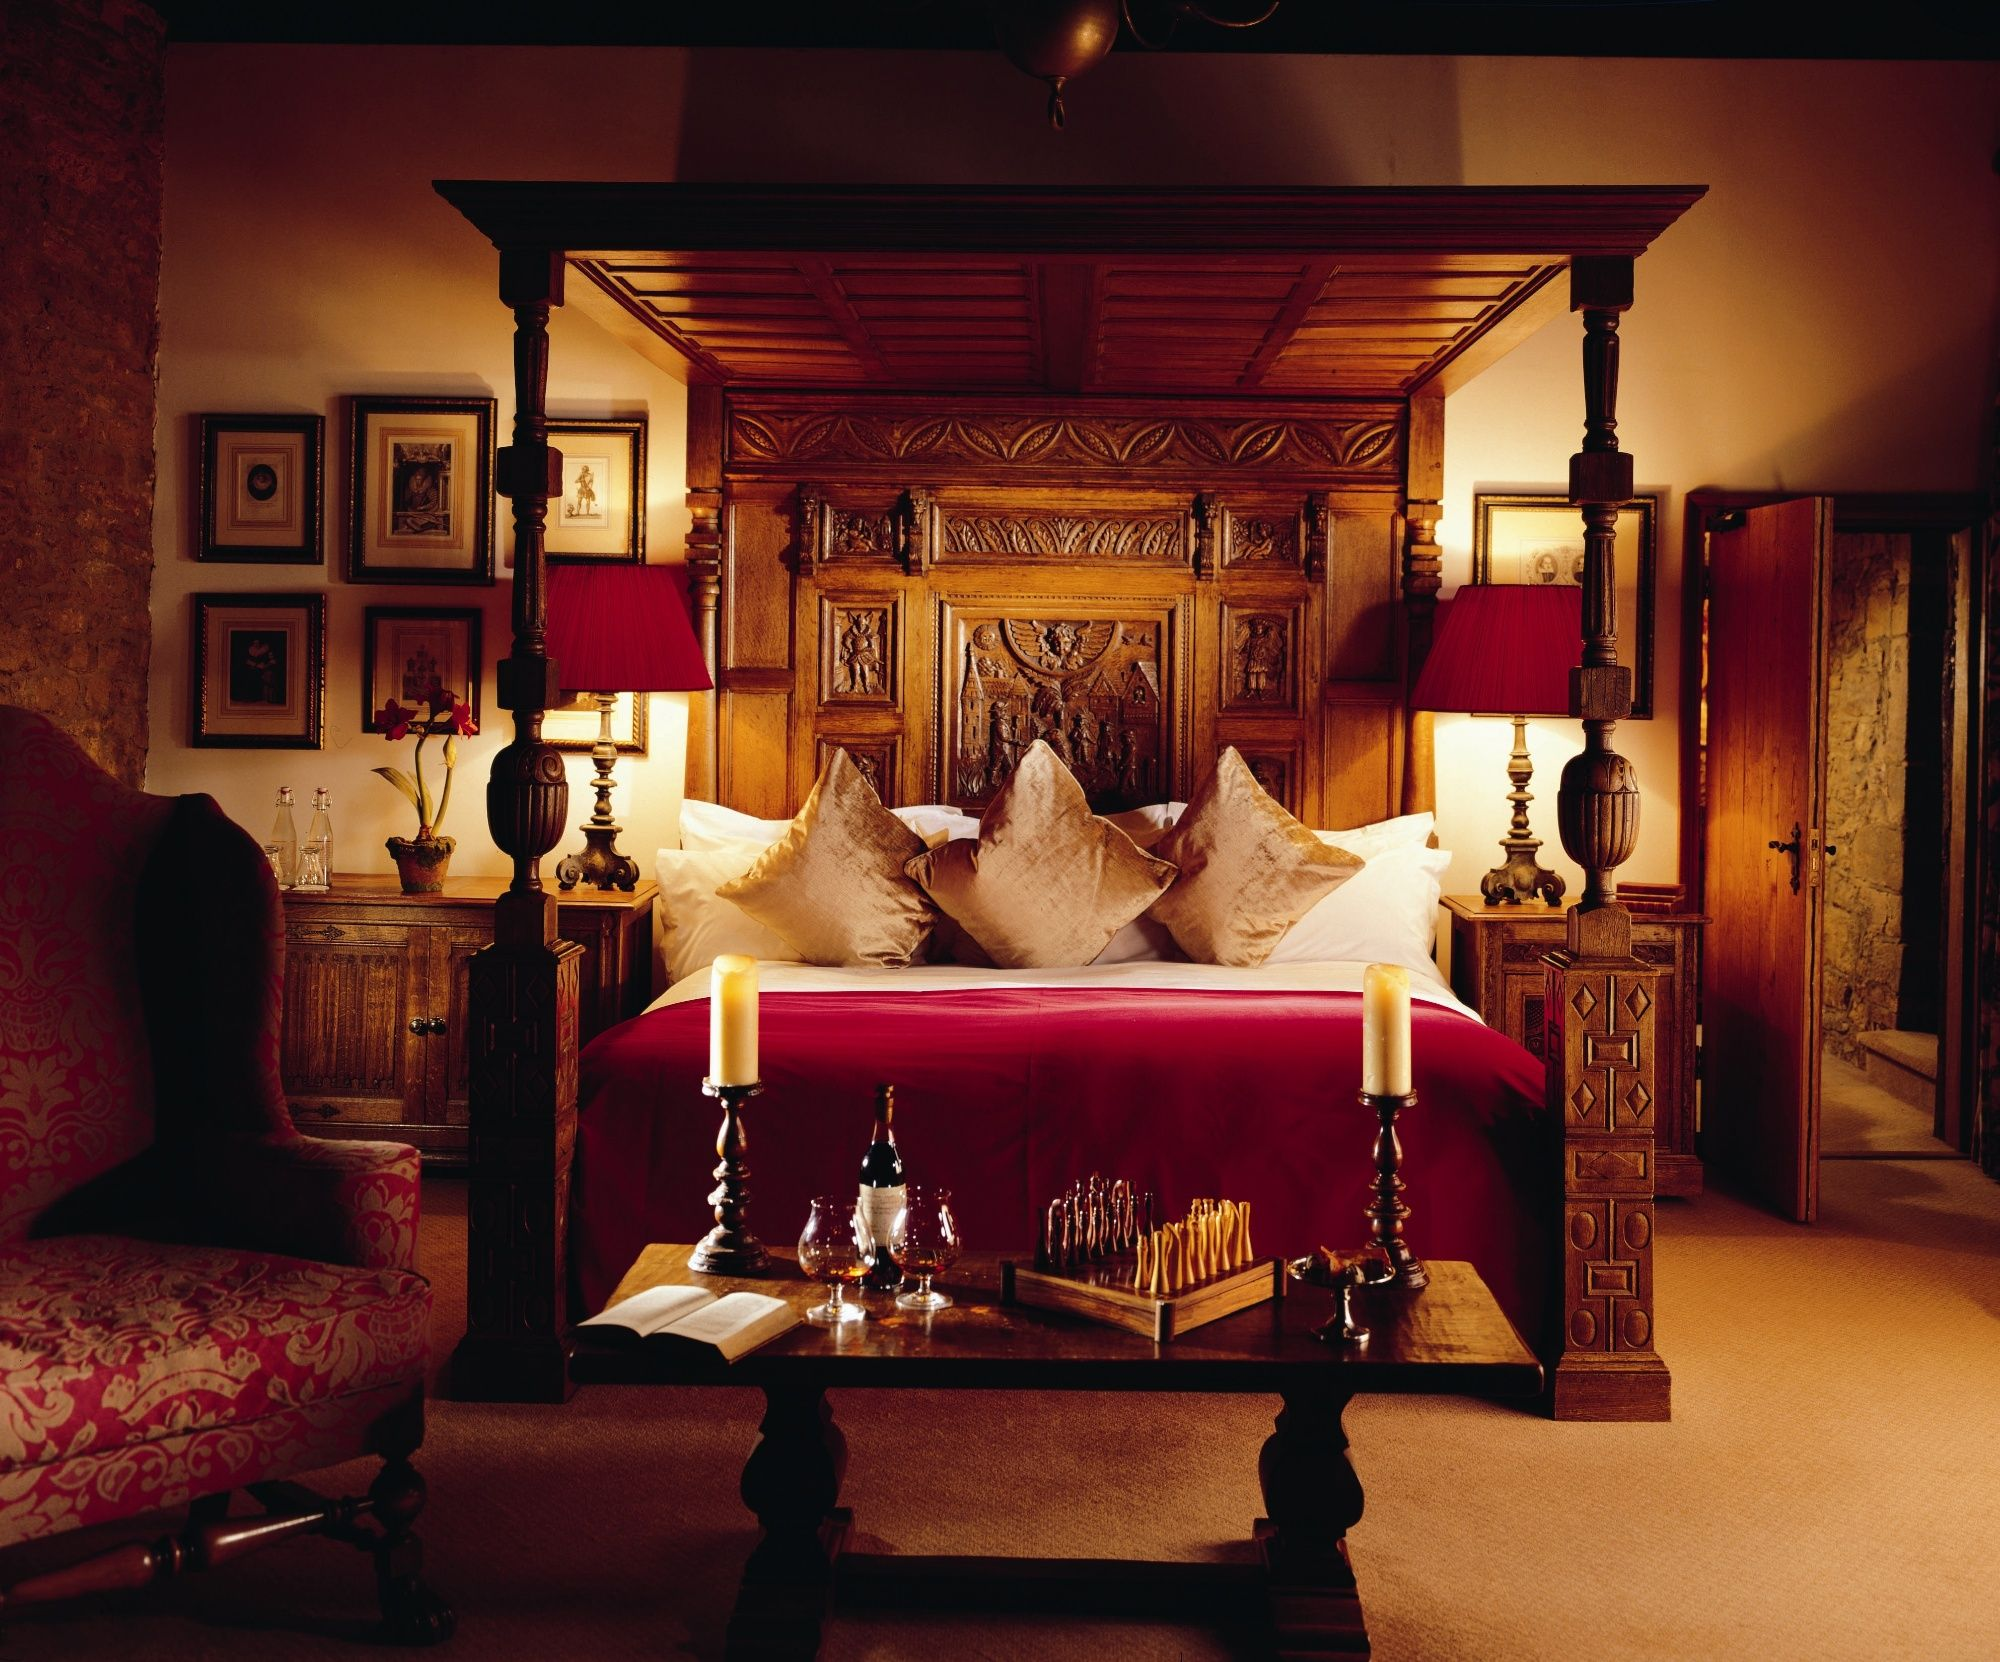 Fawsley hall hotel and spa room for romance luxury hotel romantic weekend break